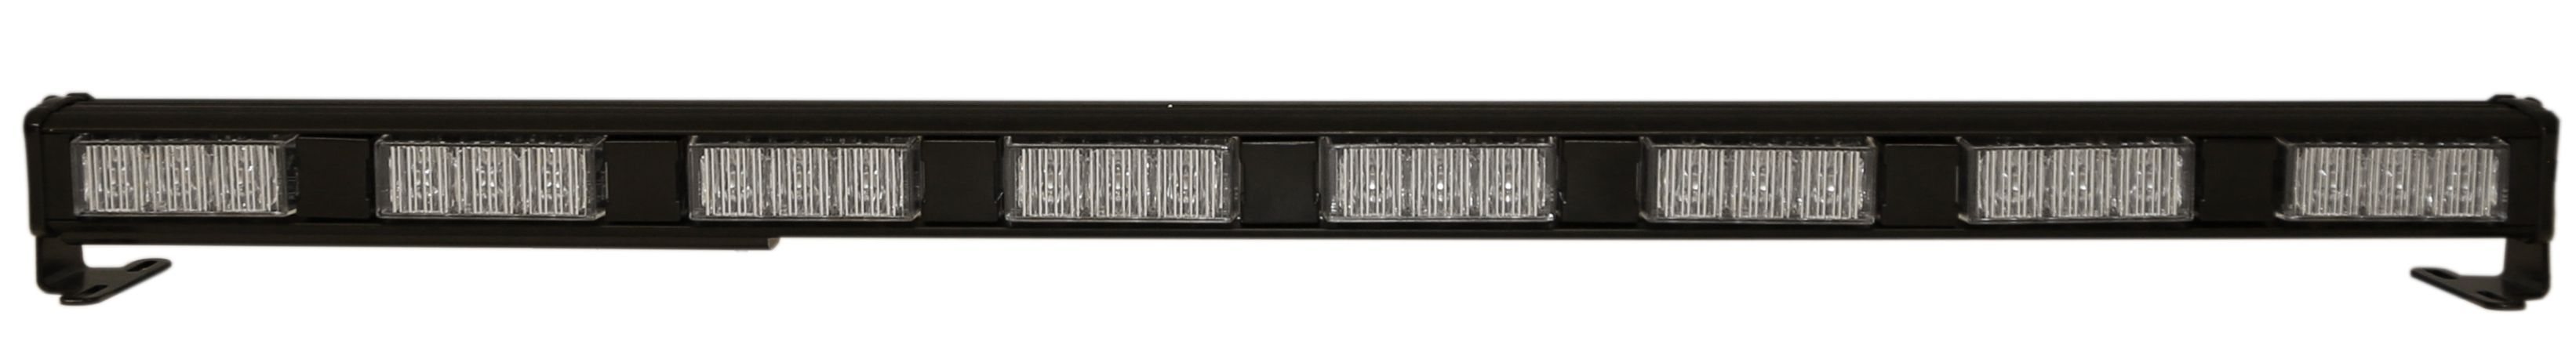 ECCO Lighting - Signal Bar Kit: LED Safety Director | 32 flash patterns | in-cab switch panel | 15' cable | 12-24VDC | amber